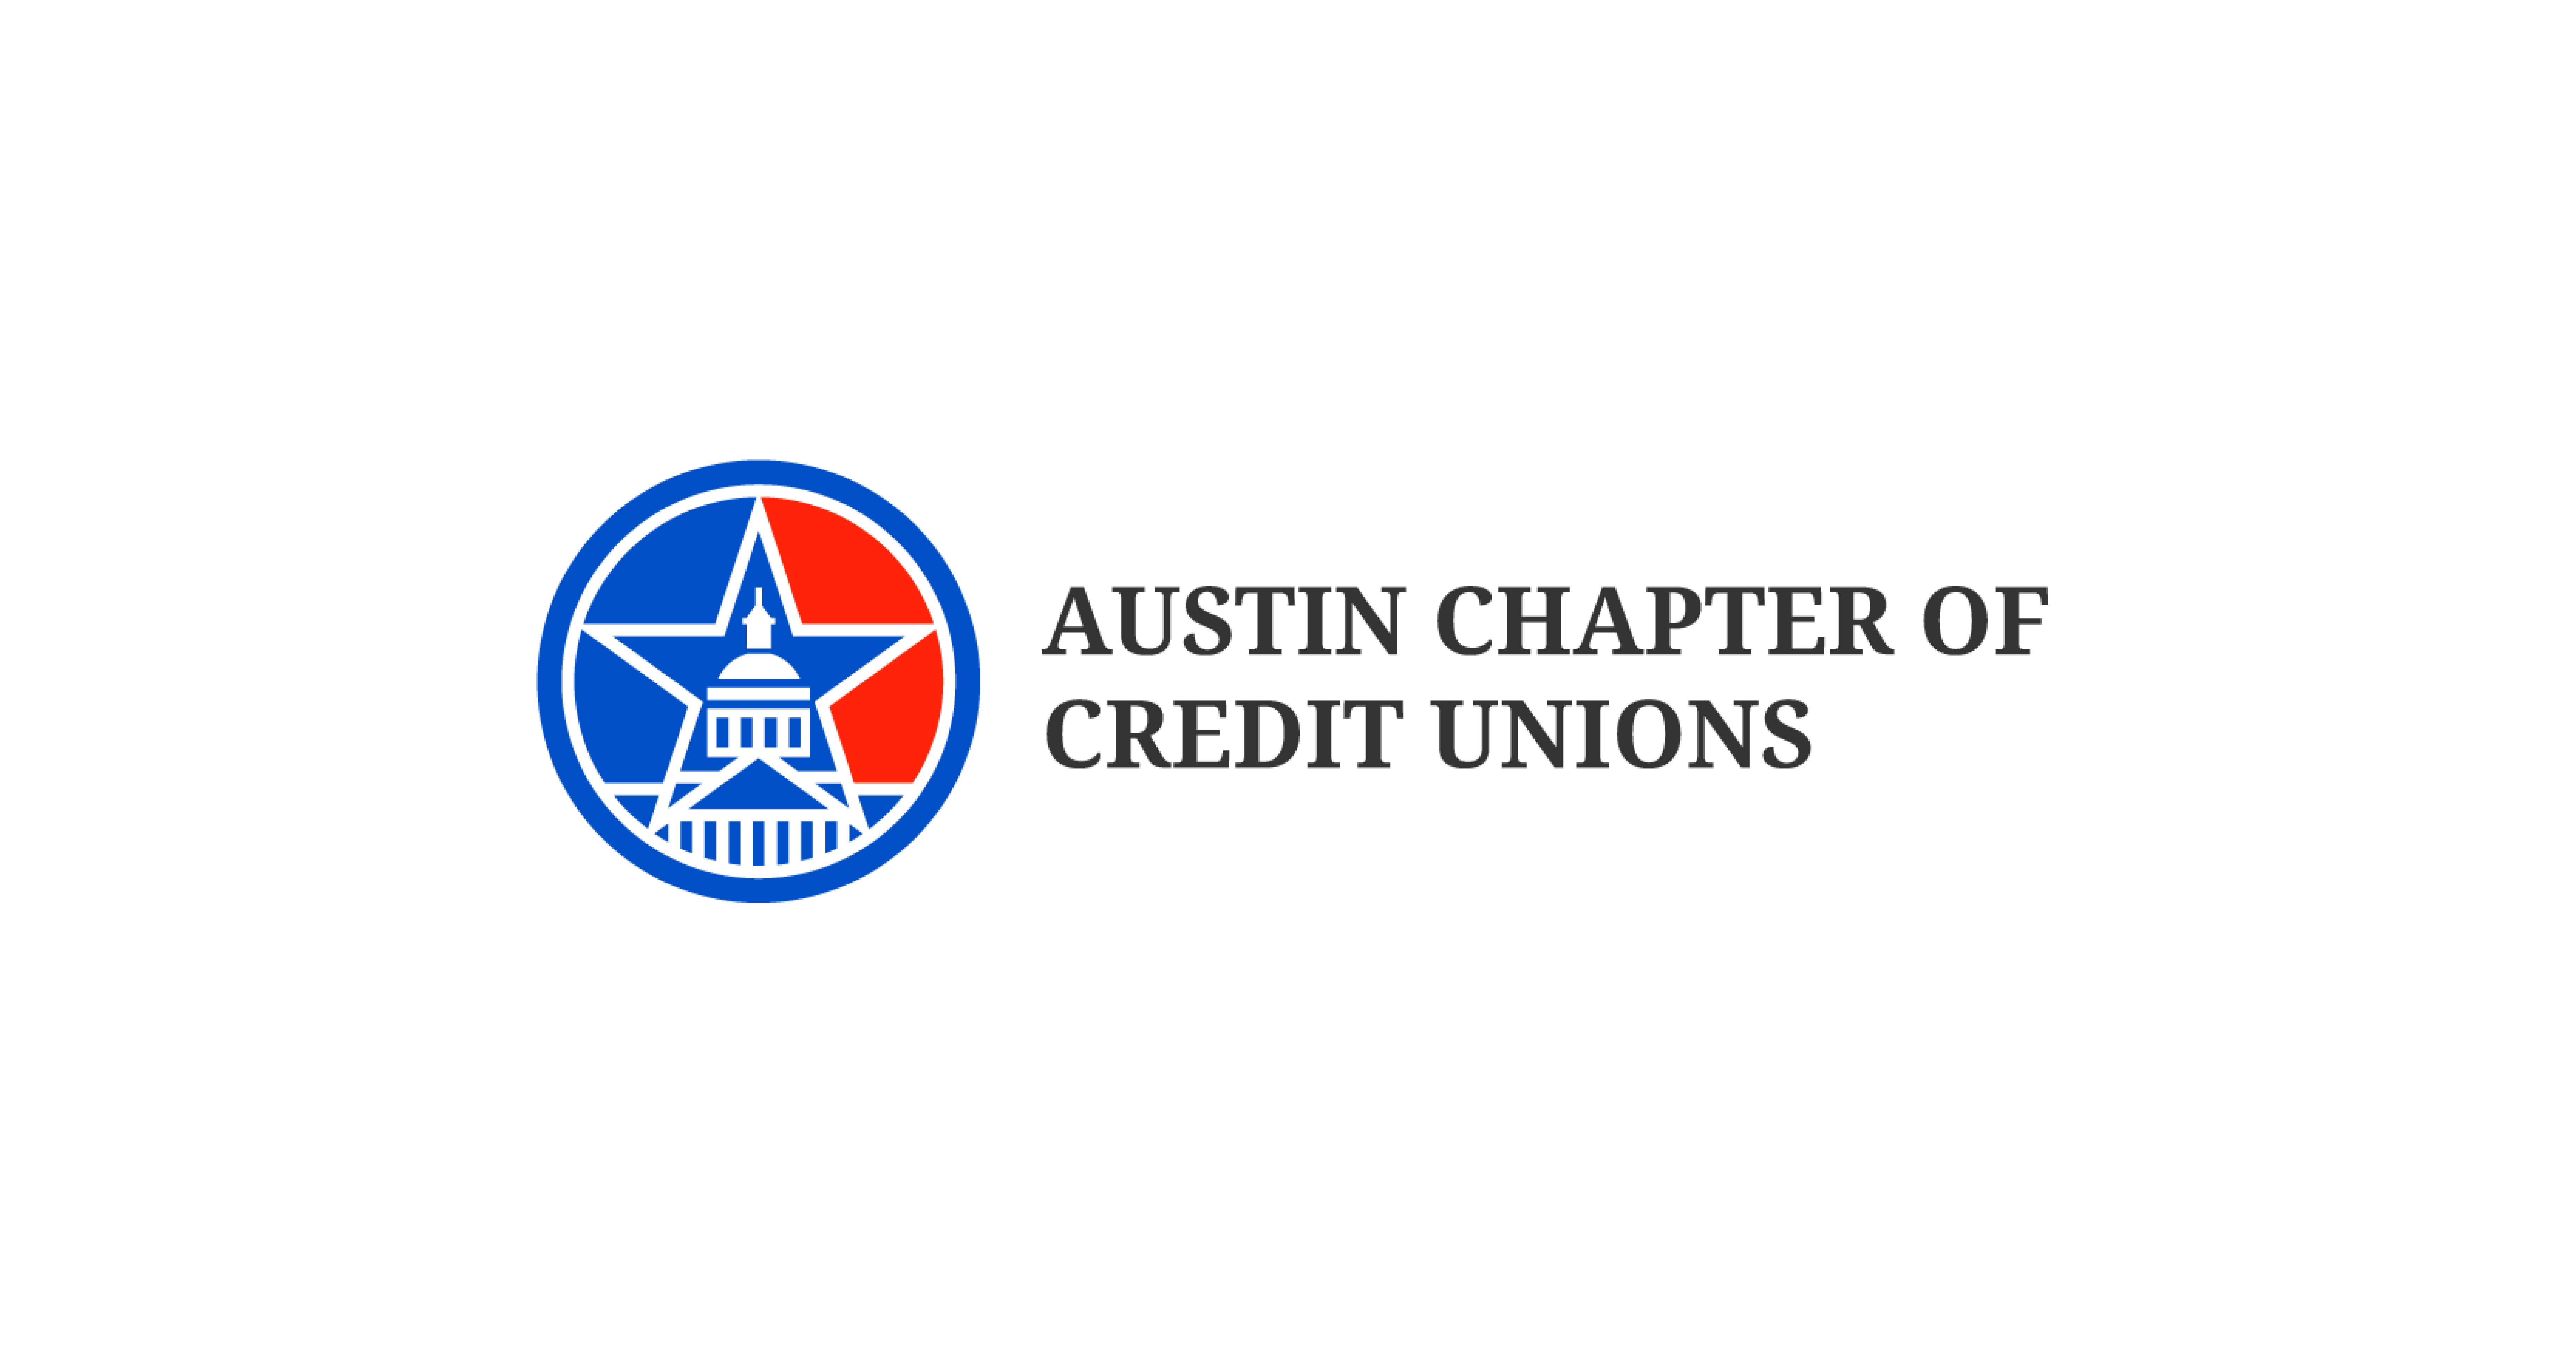 Austin Chapter of CUs